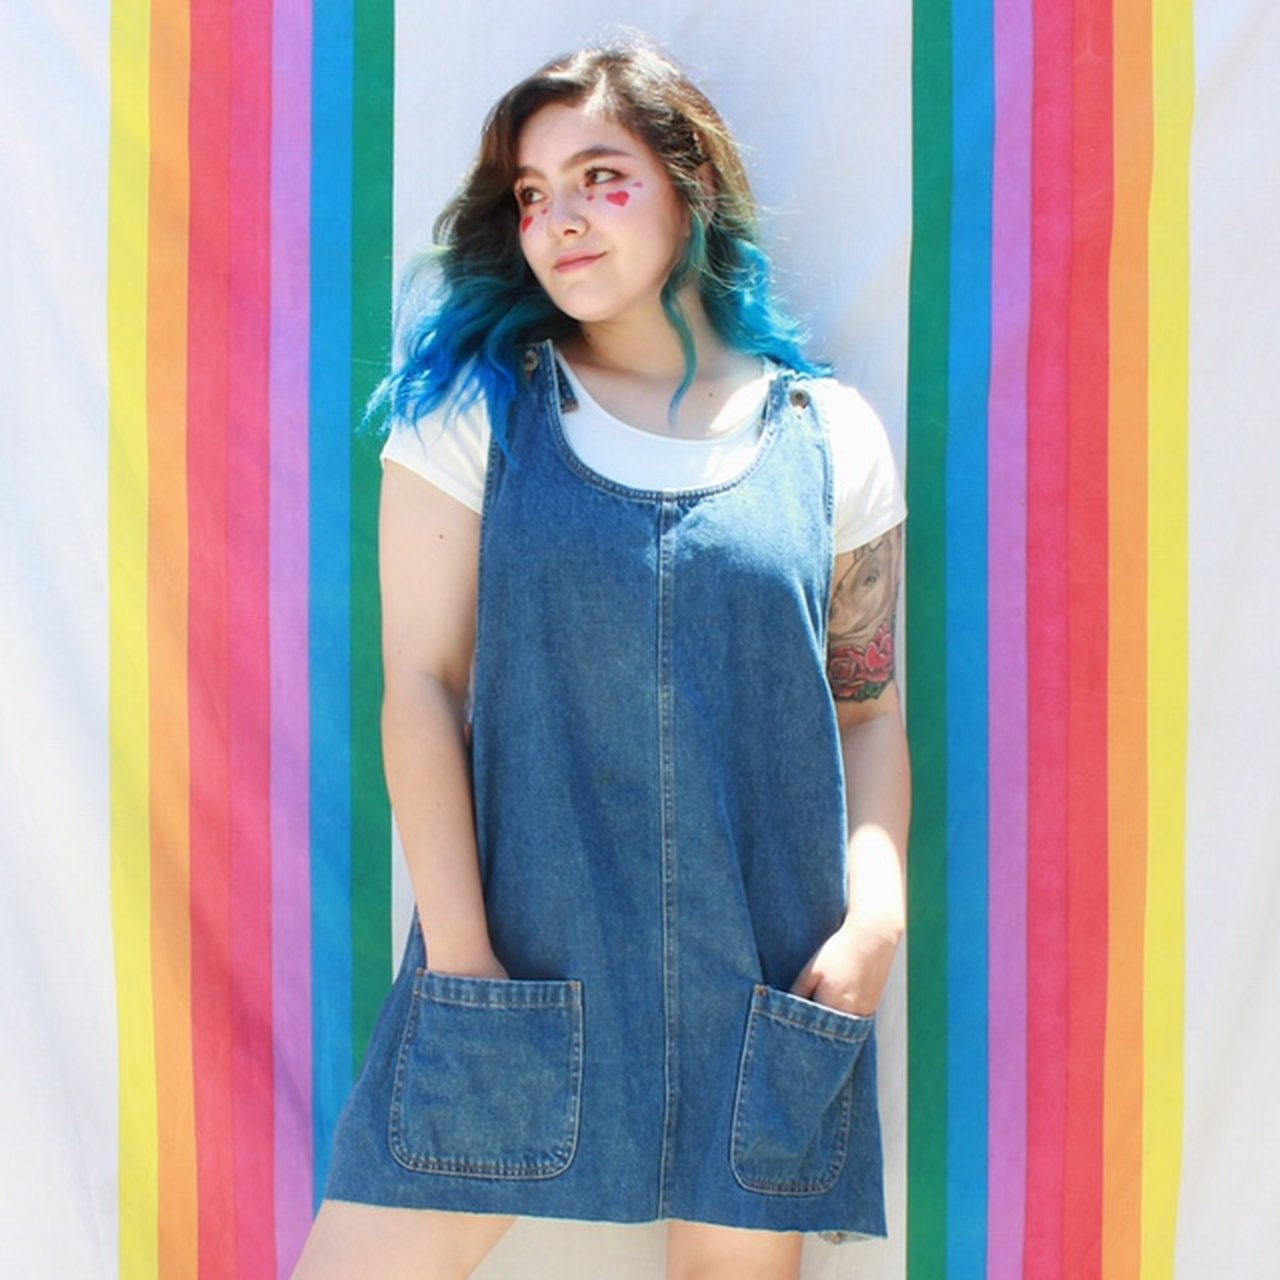 e051b11c7af 🦋 vintage 80s   90s denim overall pinafore dress. so cute a - Depop